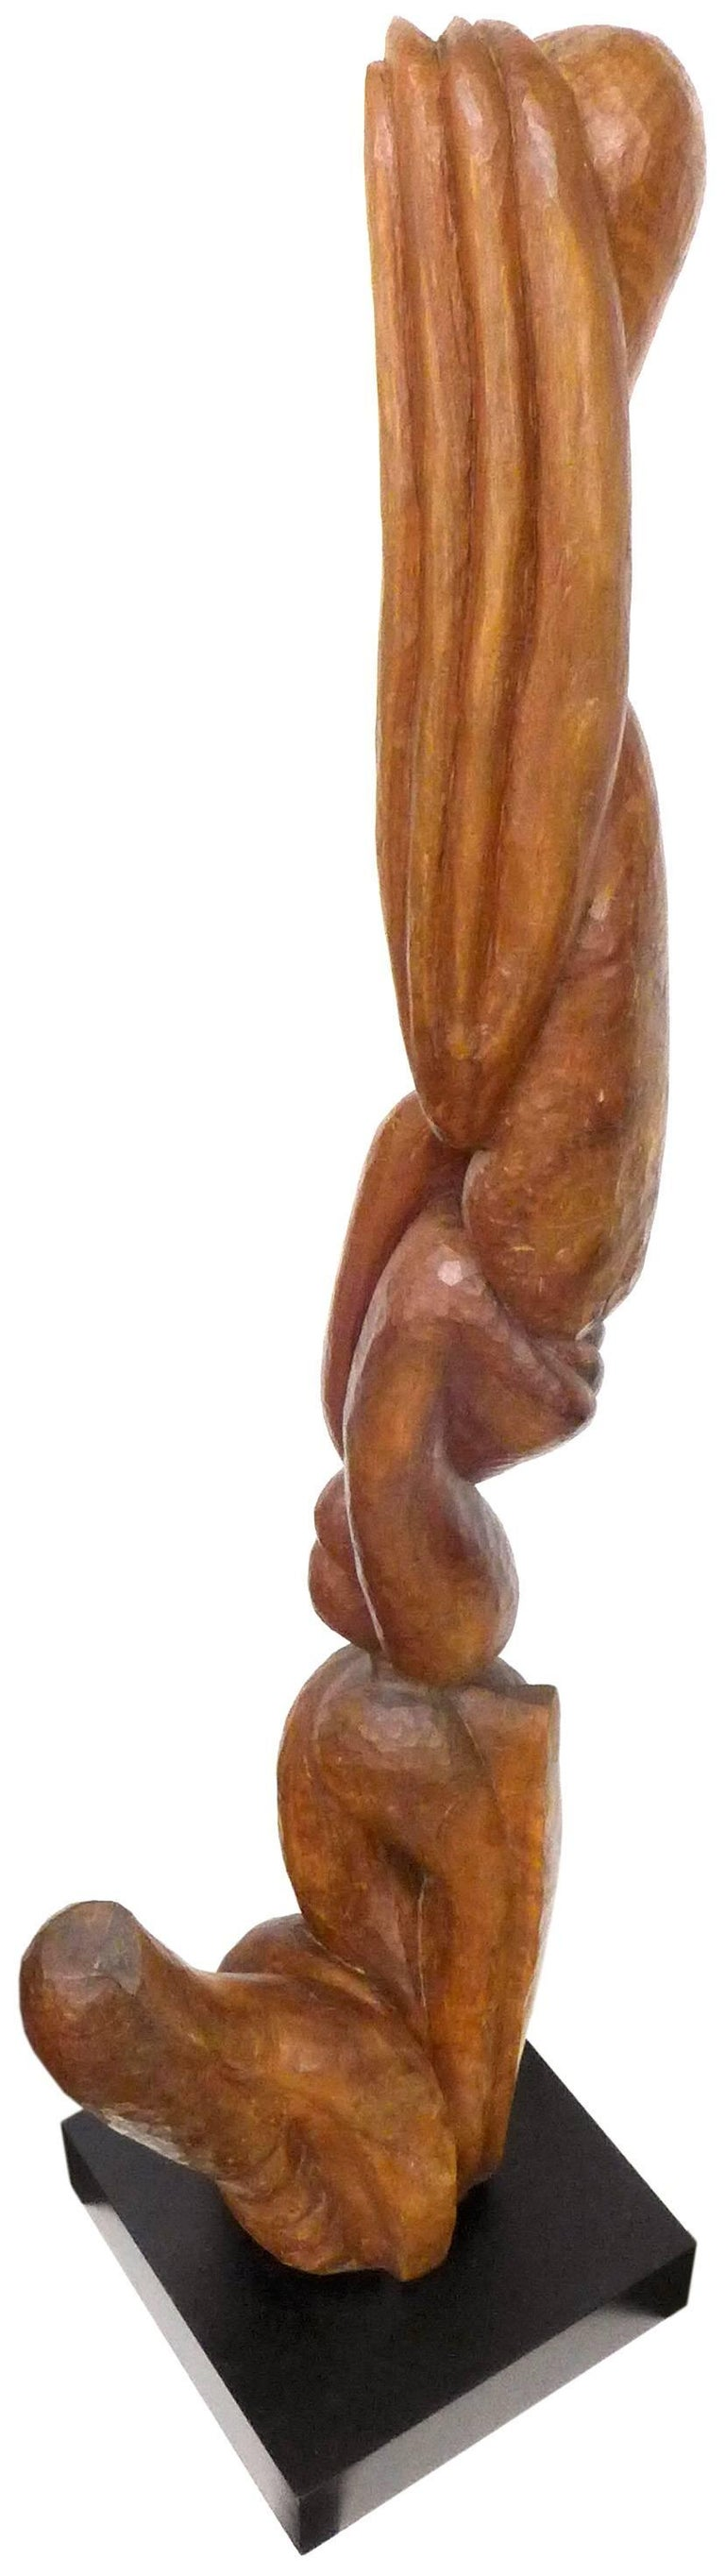 Biomorphic Carved-Wood Sculpture 2